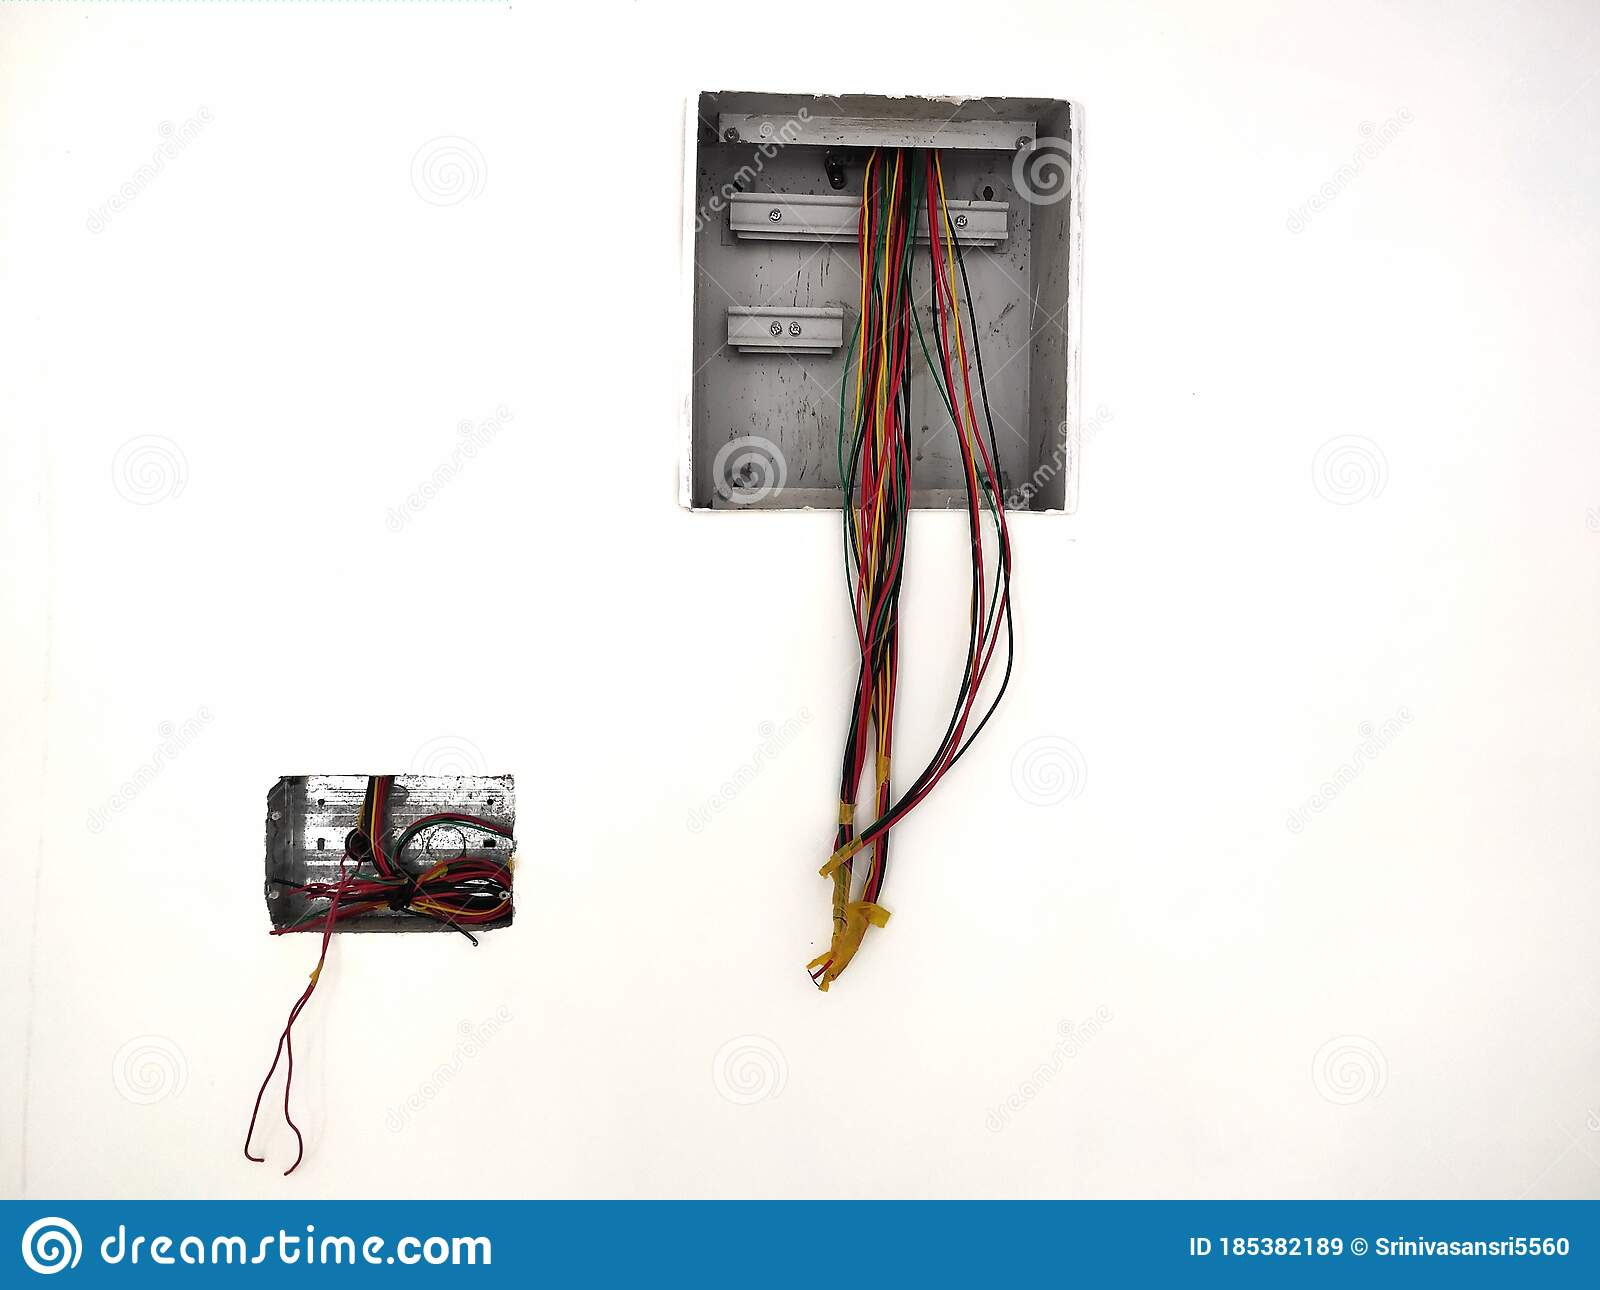 Unfinished Electrical Steel Junction Box On White Brick Wall Household Electric Installation Work Home Wiring Repair Upgrade Stock Image Image Of Mounting Cable 185382189